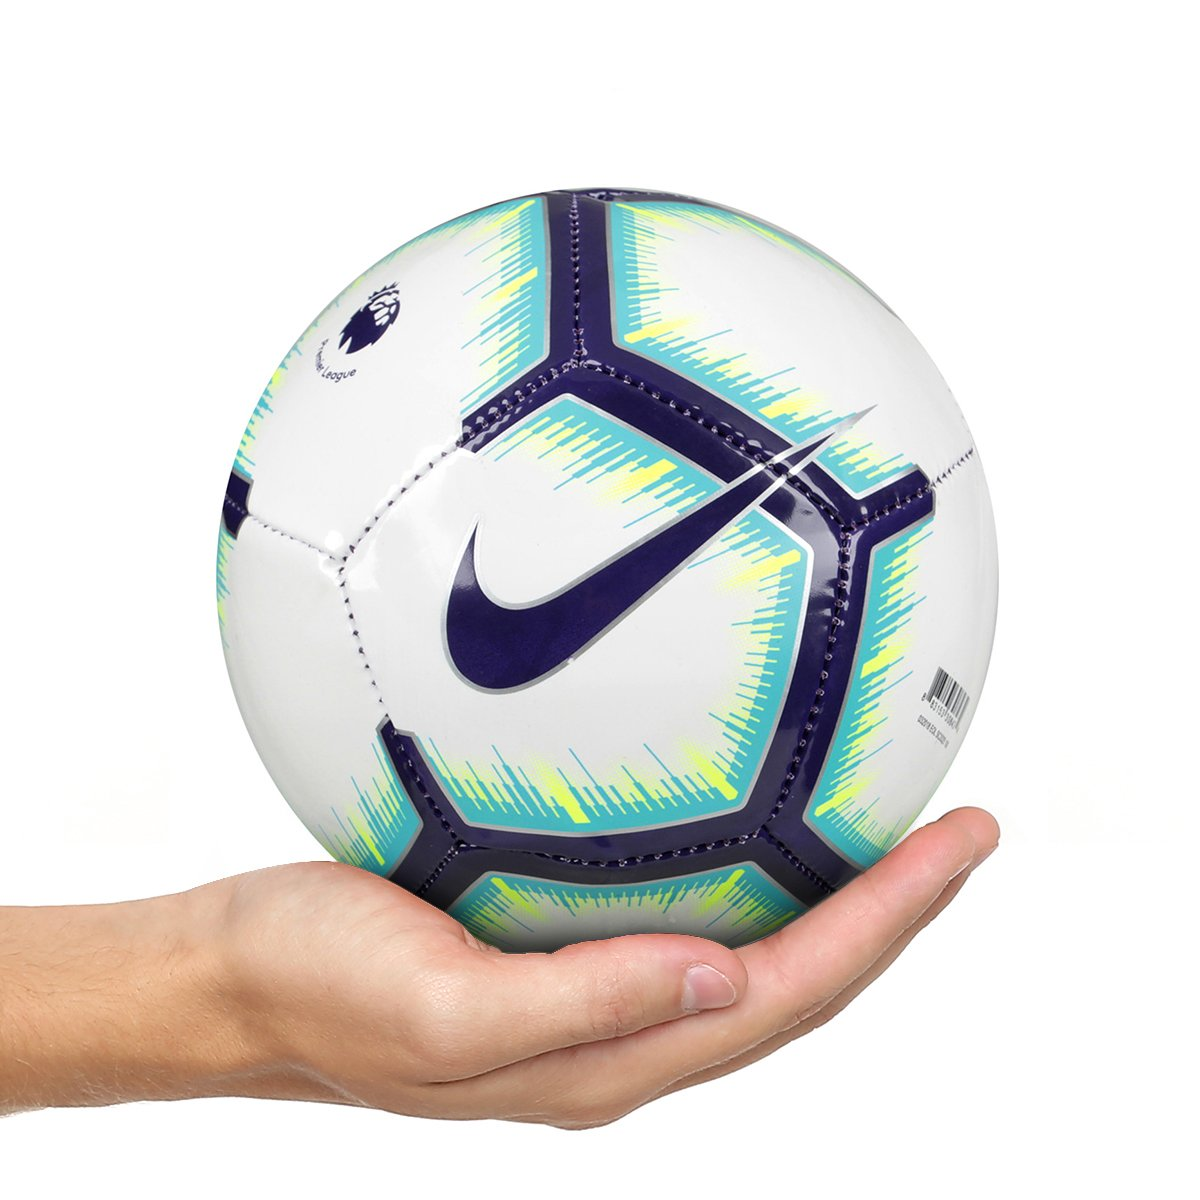 0911375066 Mini Bola de Futebol Premier League 2018 Nike